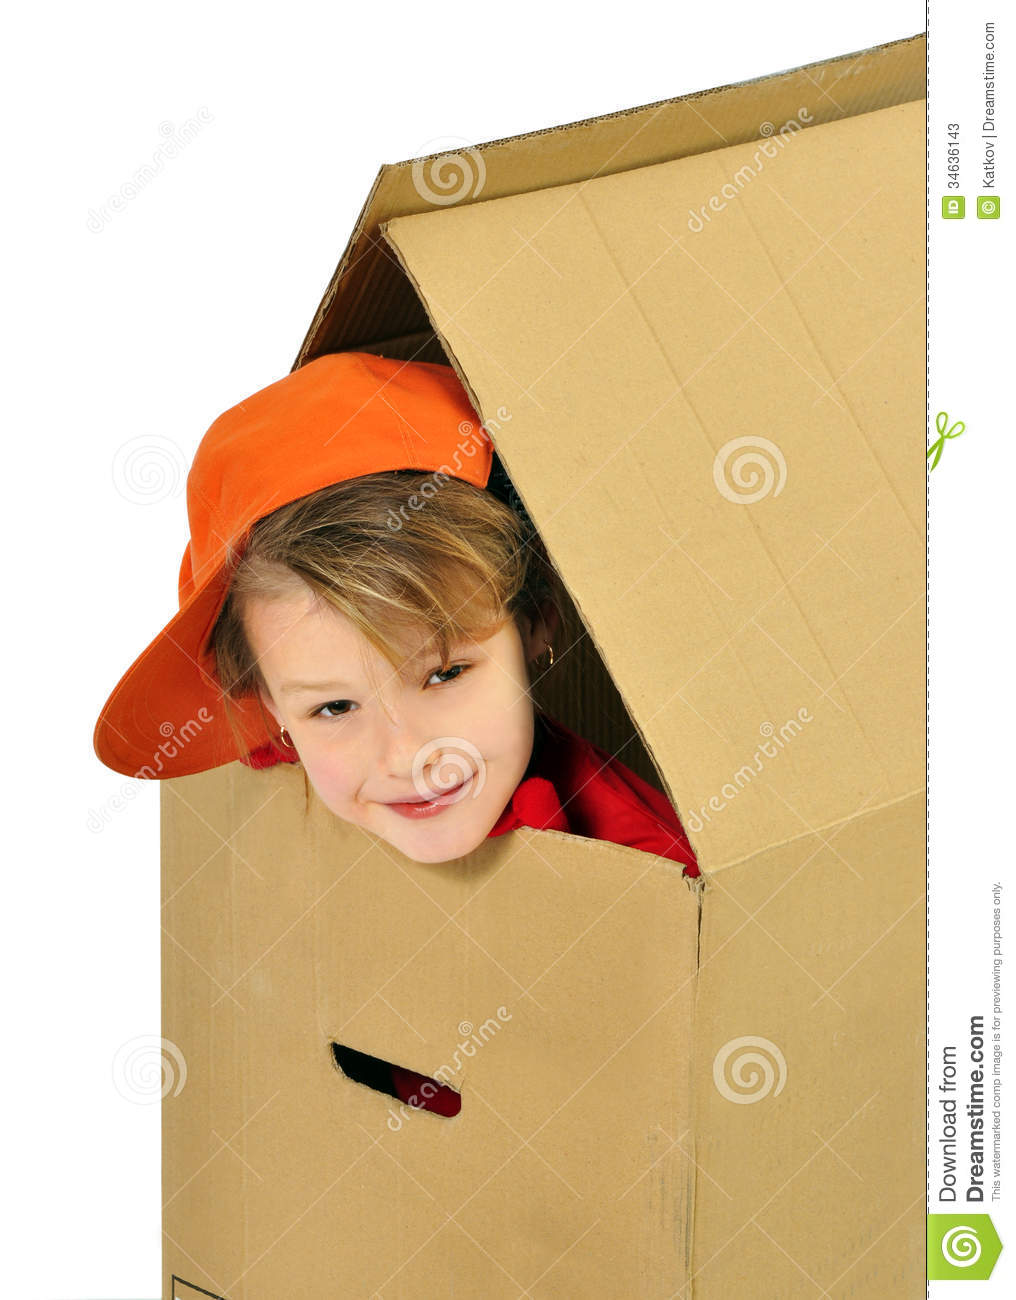 girl playing a toy house stock photos image 34636143. Black Bedroom Furniture Sets. Home Design Ideas